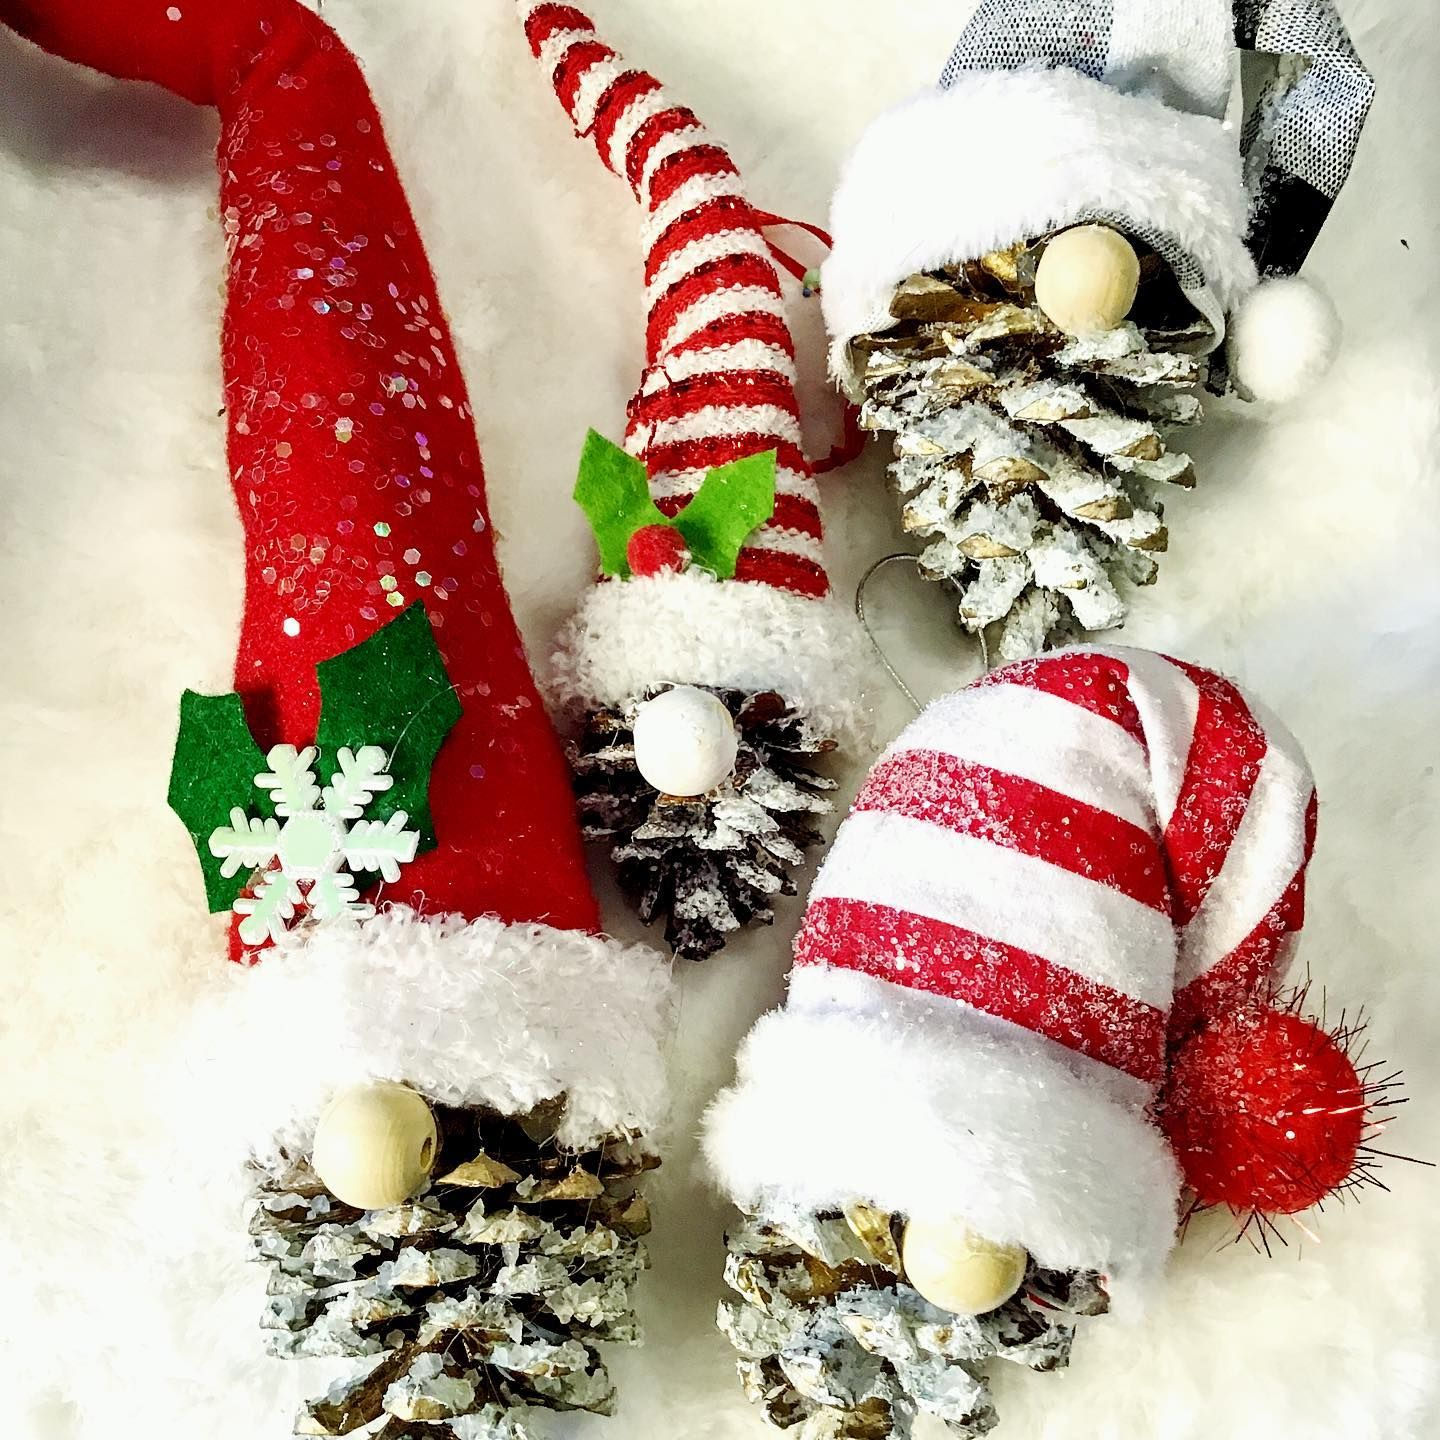 These Pinecone Gnomes Turned Out Adorable The Instructional Diy Video Is On My Facebook Pag Xmas Crafts Christmas Ornament Crafts Christmas Ornaments Homemade